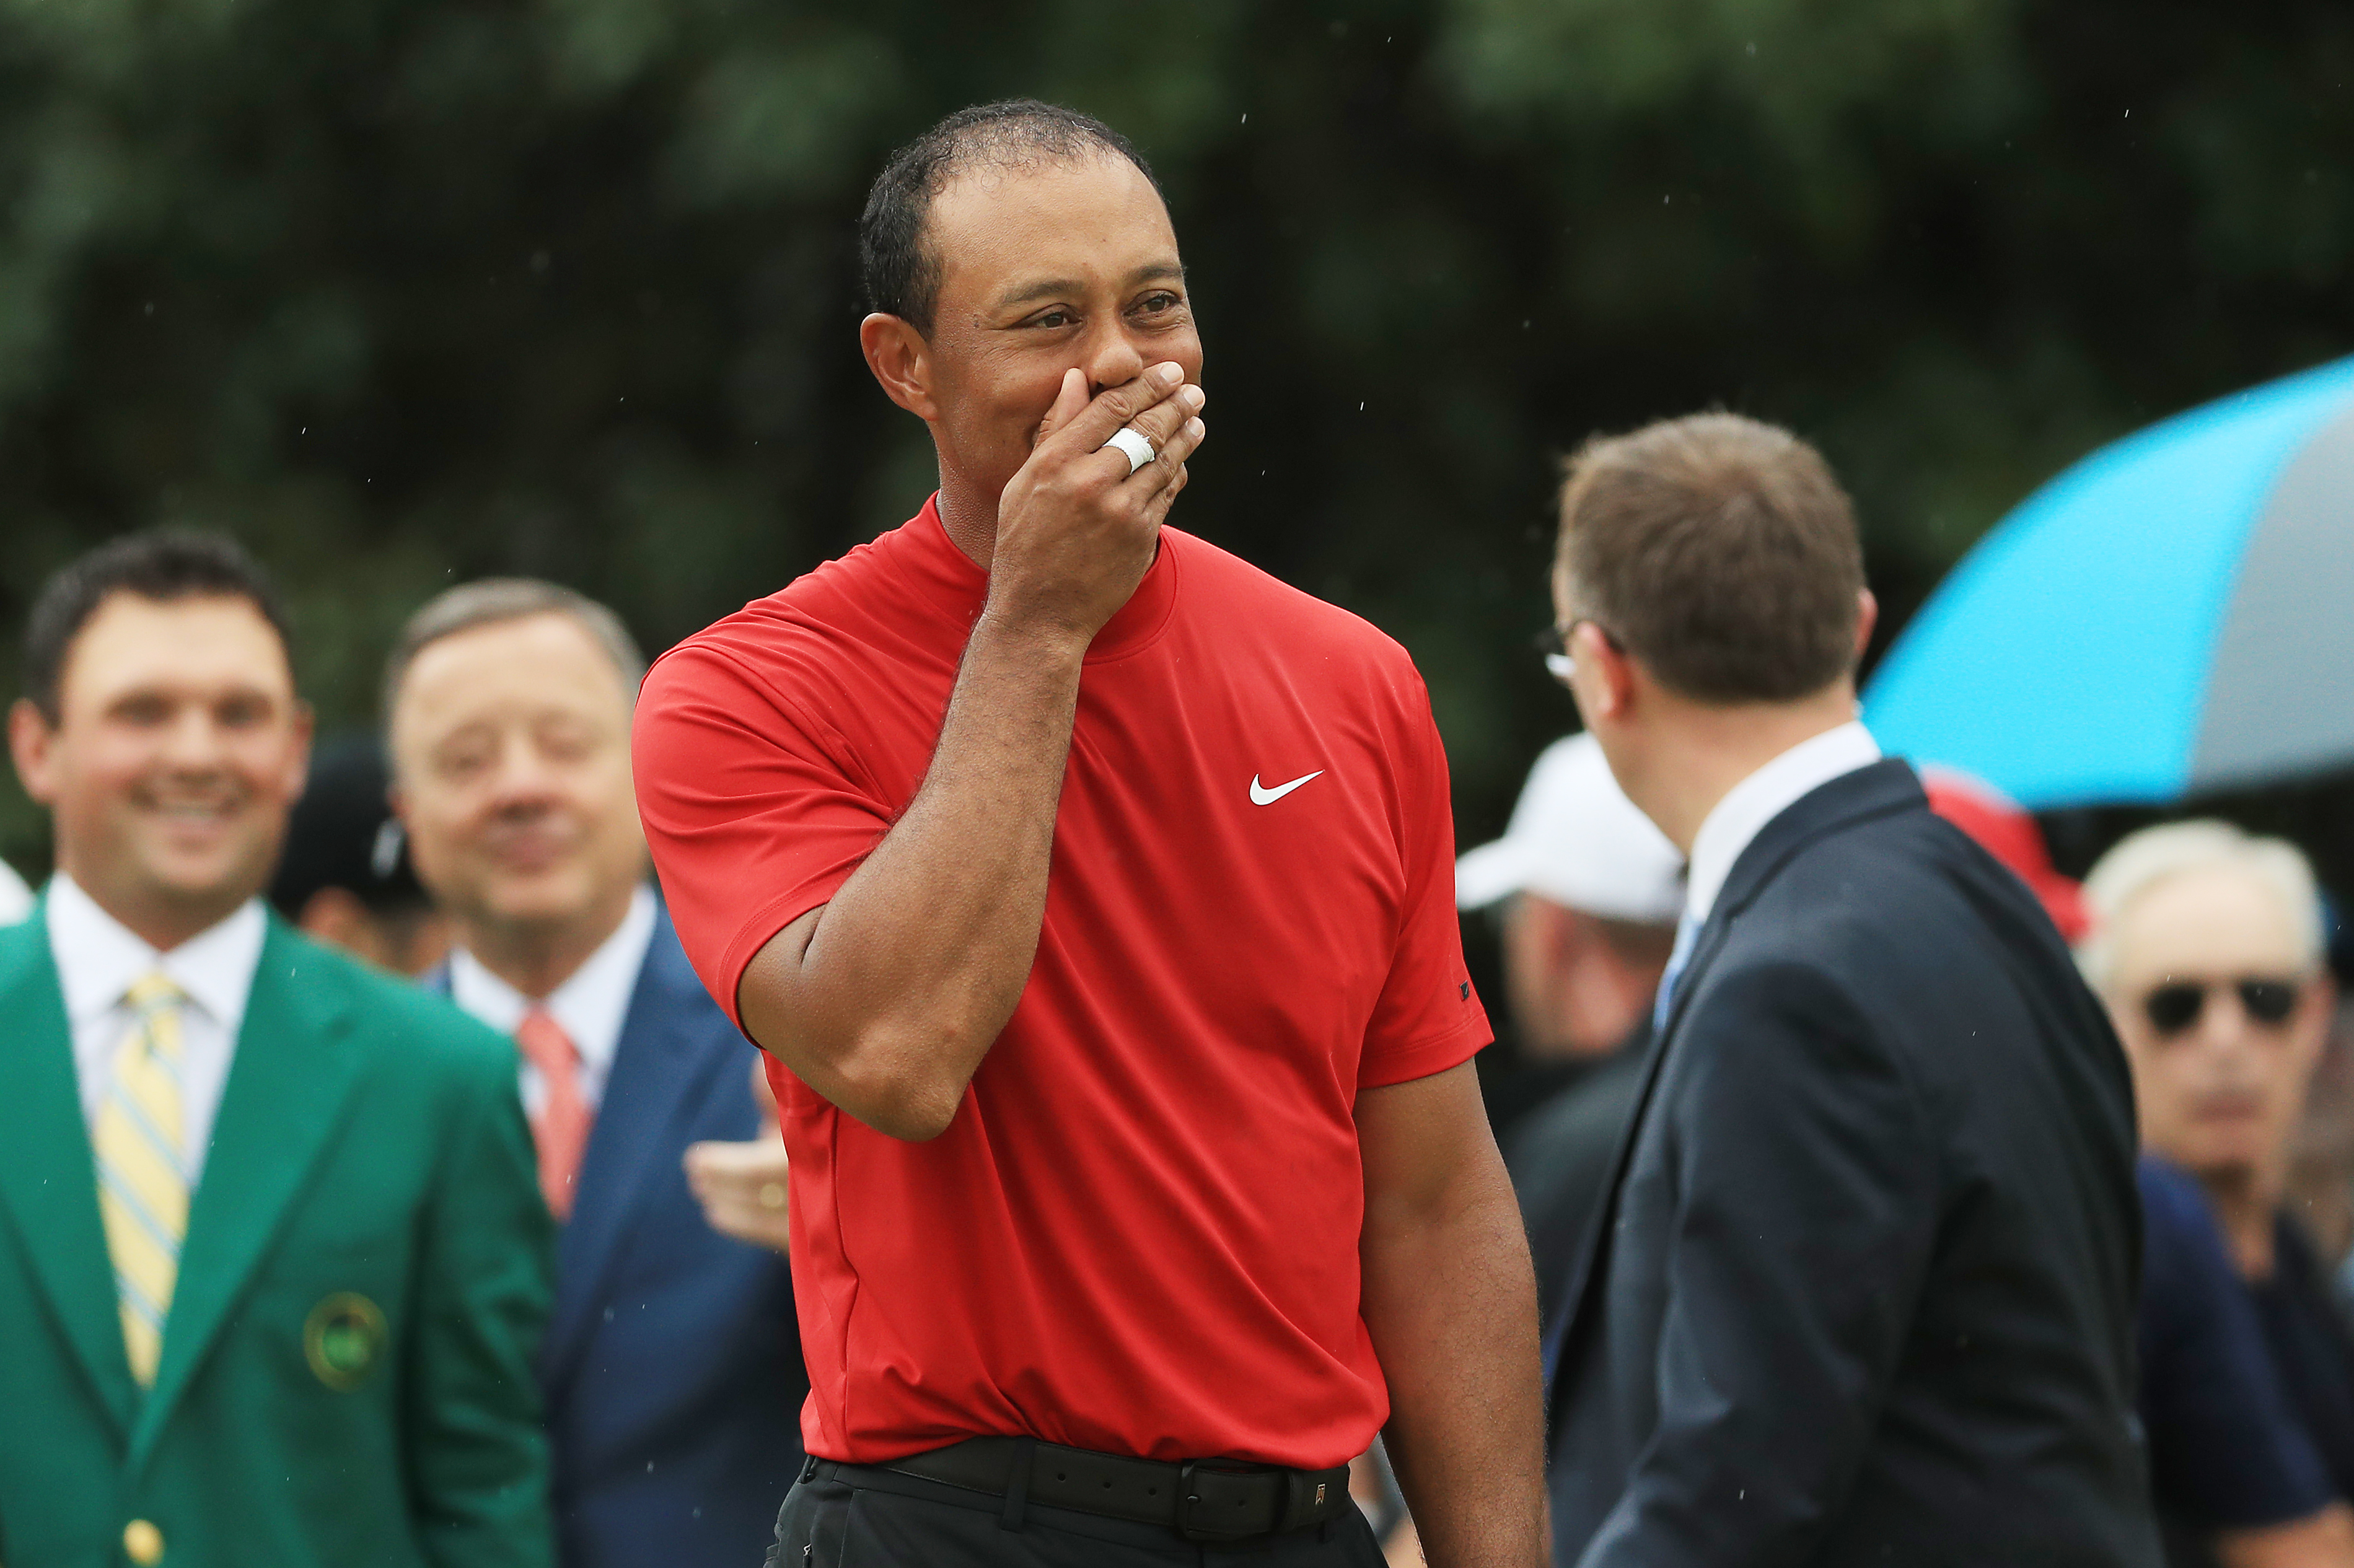 2019 Masters: Tiger Woods, major champ again, is coming for Jack Nicklaus' record